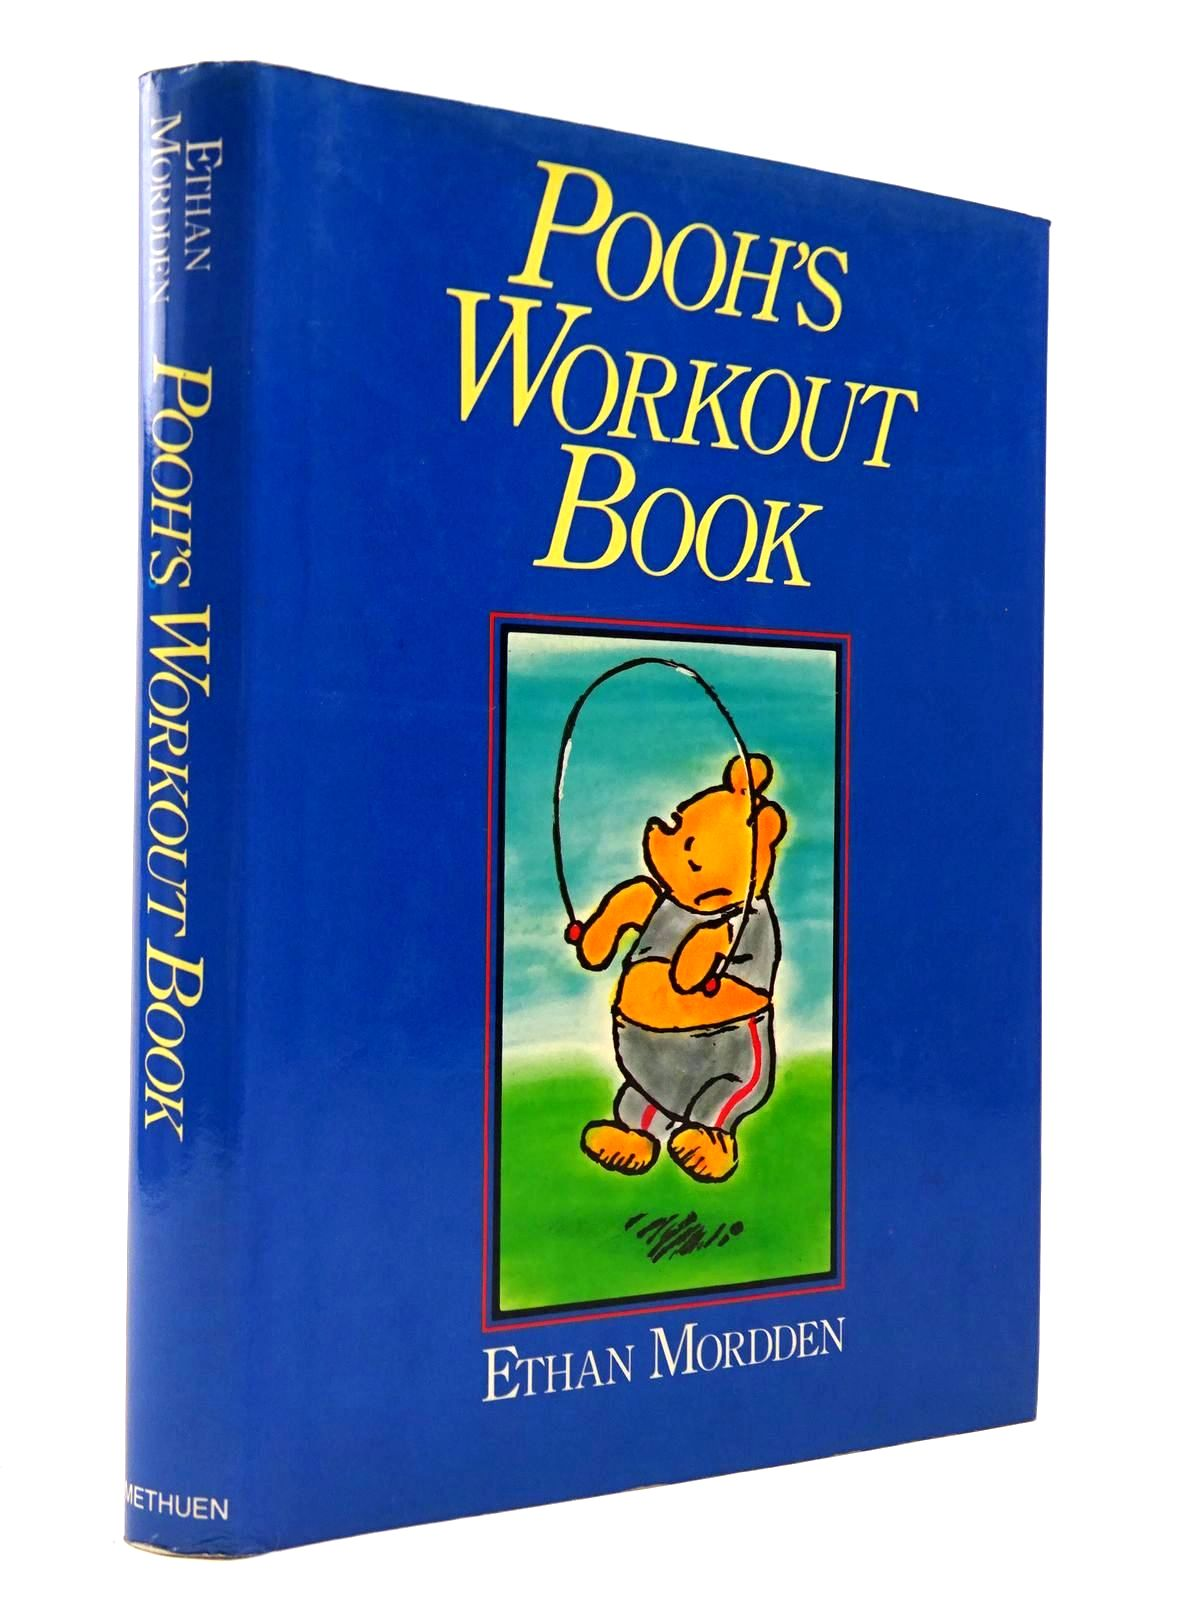 Photo of POOH'S WORKOUT BOOK written by Mordden, Ethan illustrated by Shepard, E.H. published by Methuen Children's Books Ltd. (STOCK CODE: 2129731)  for sale by Stella & Rose's Books